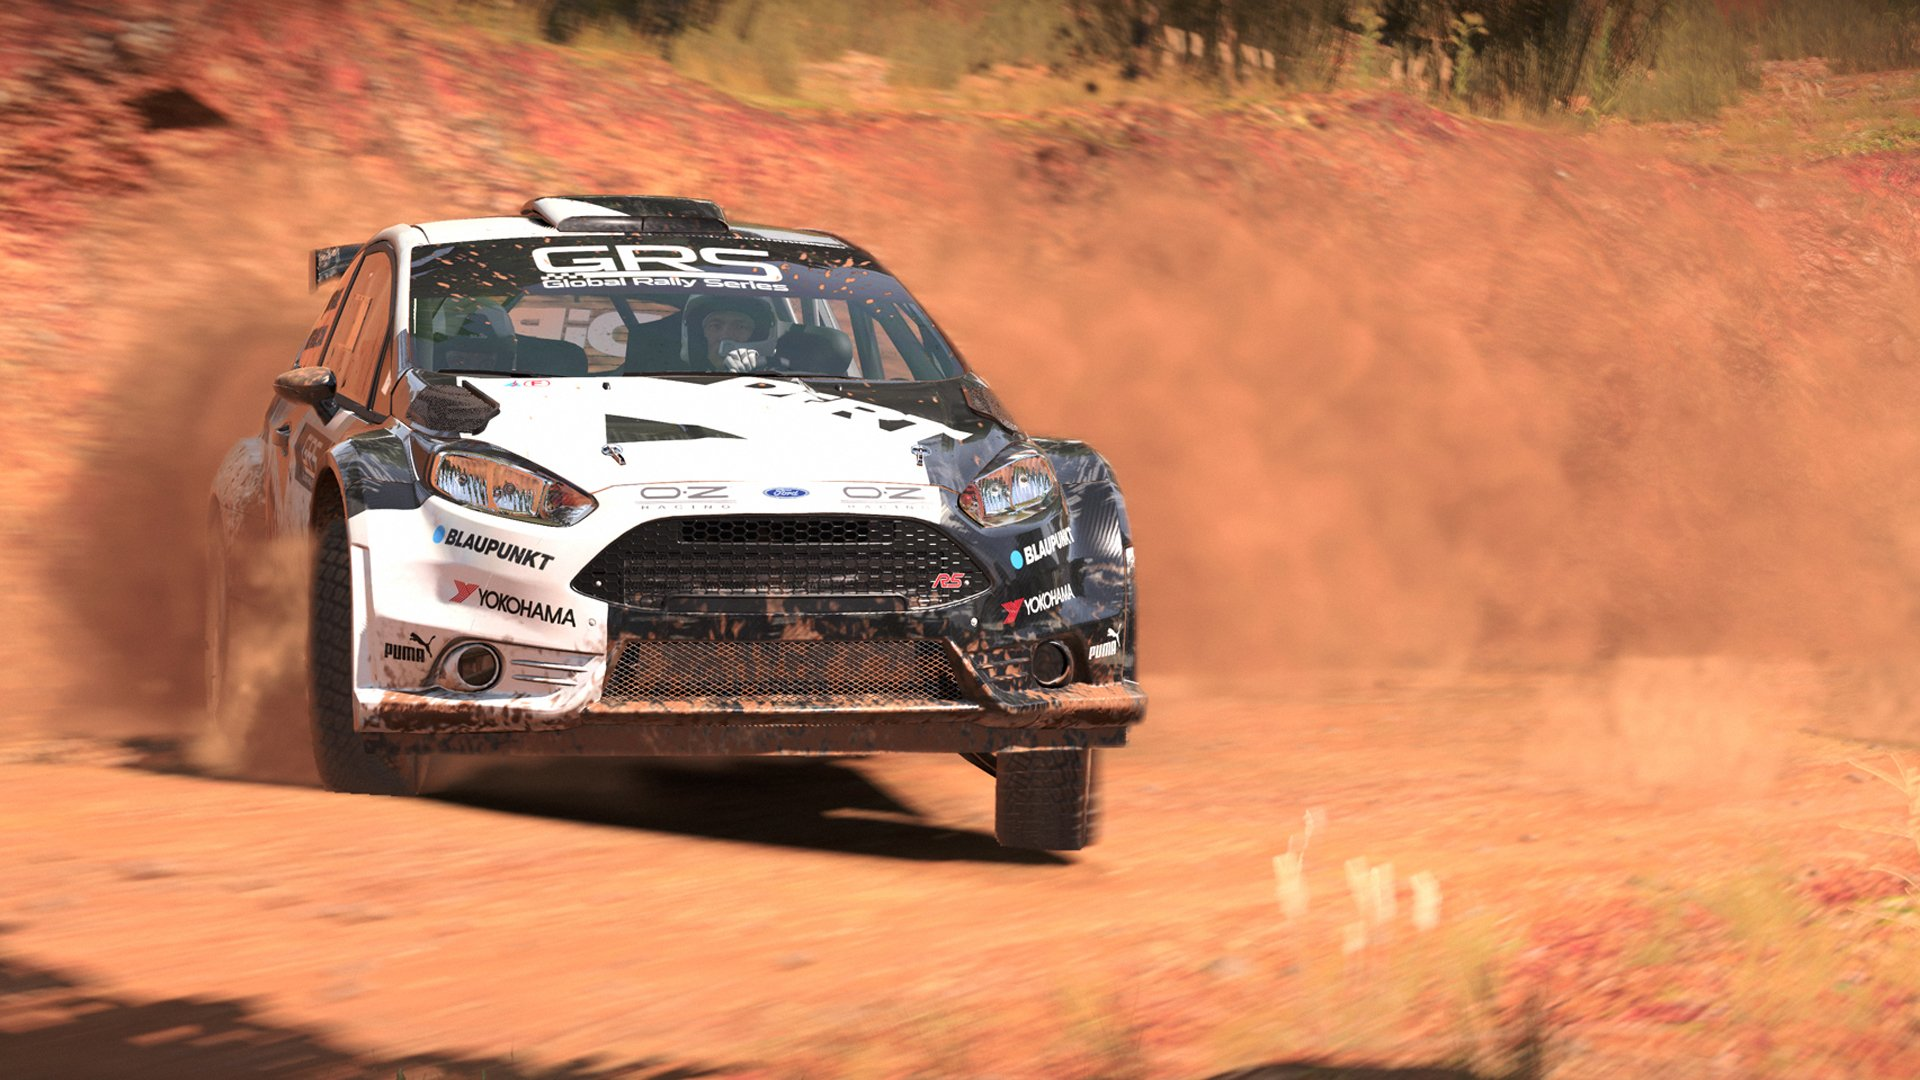 33 dirt 4 hd wallpapers | background images - wallpaper abyss